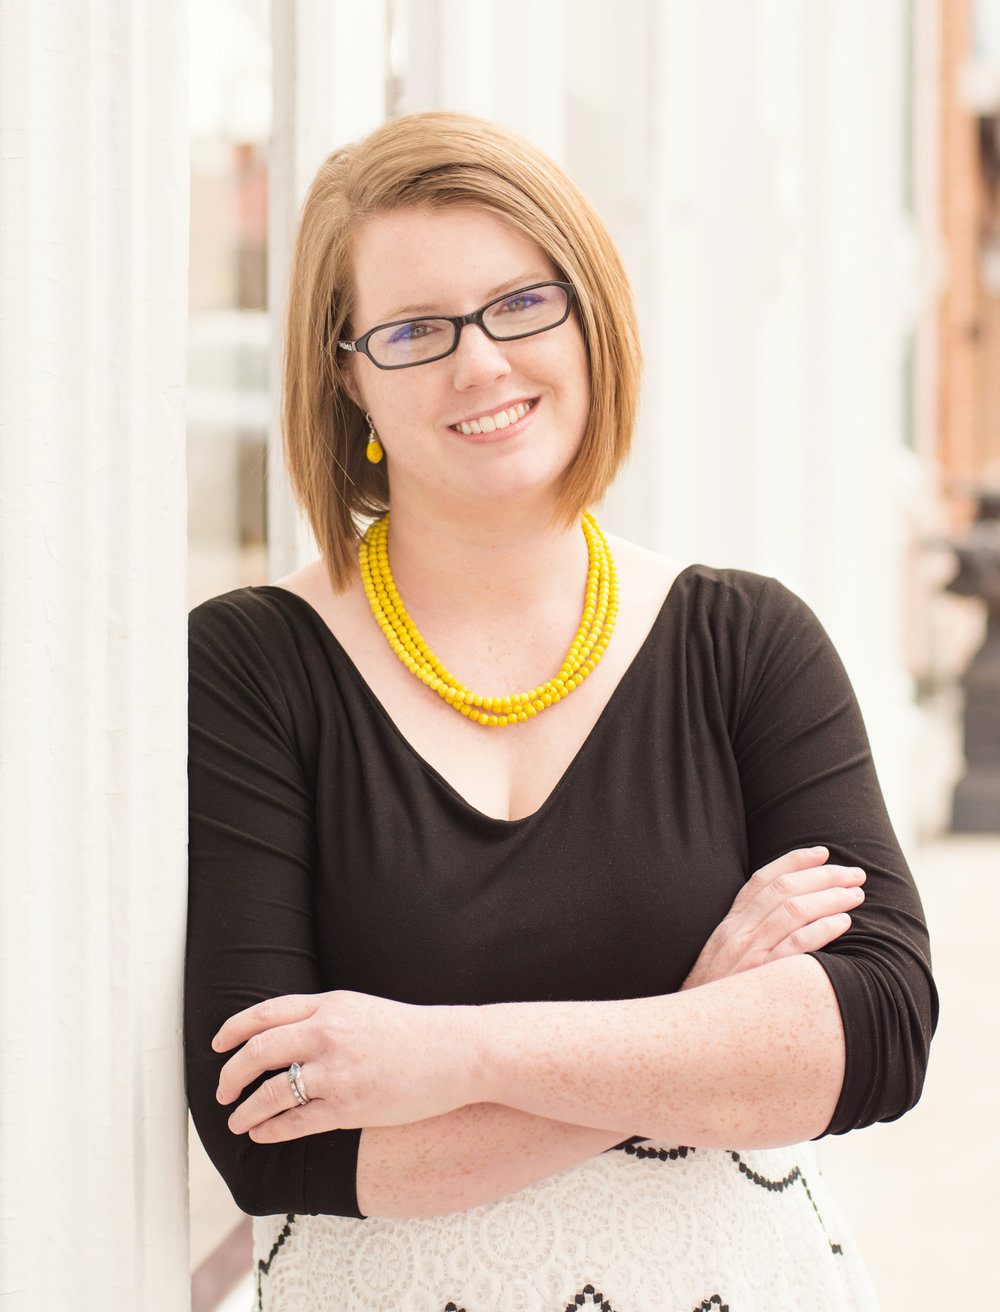 Magen Wright, Postpartum Doula, Postpartum Placenta Specialist, Belly Binding Specialist, and Childbirth Educator